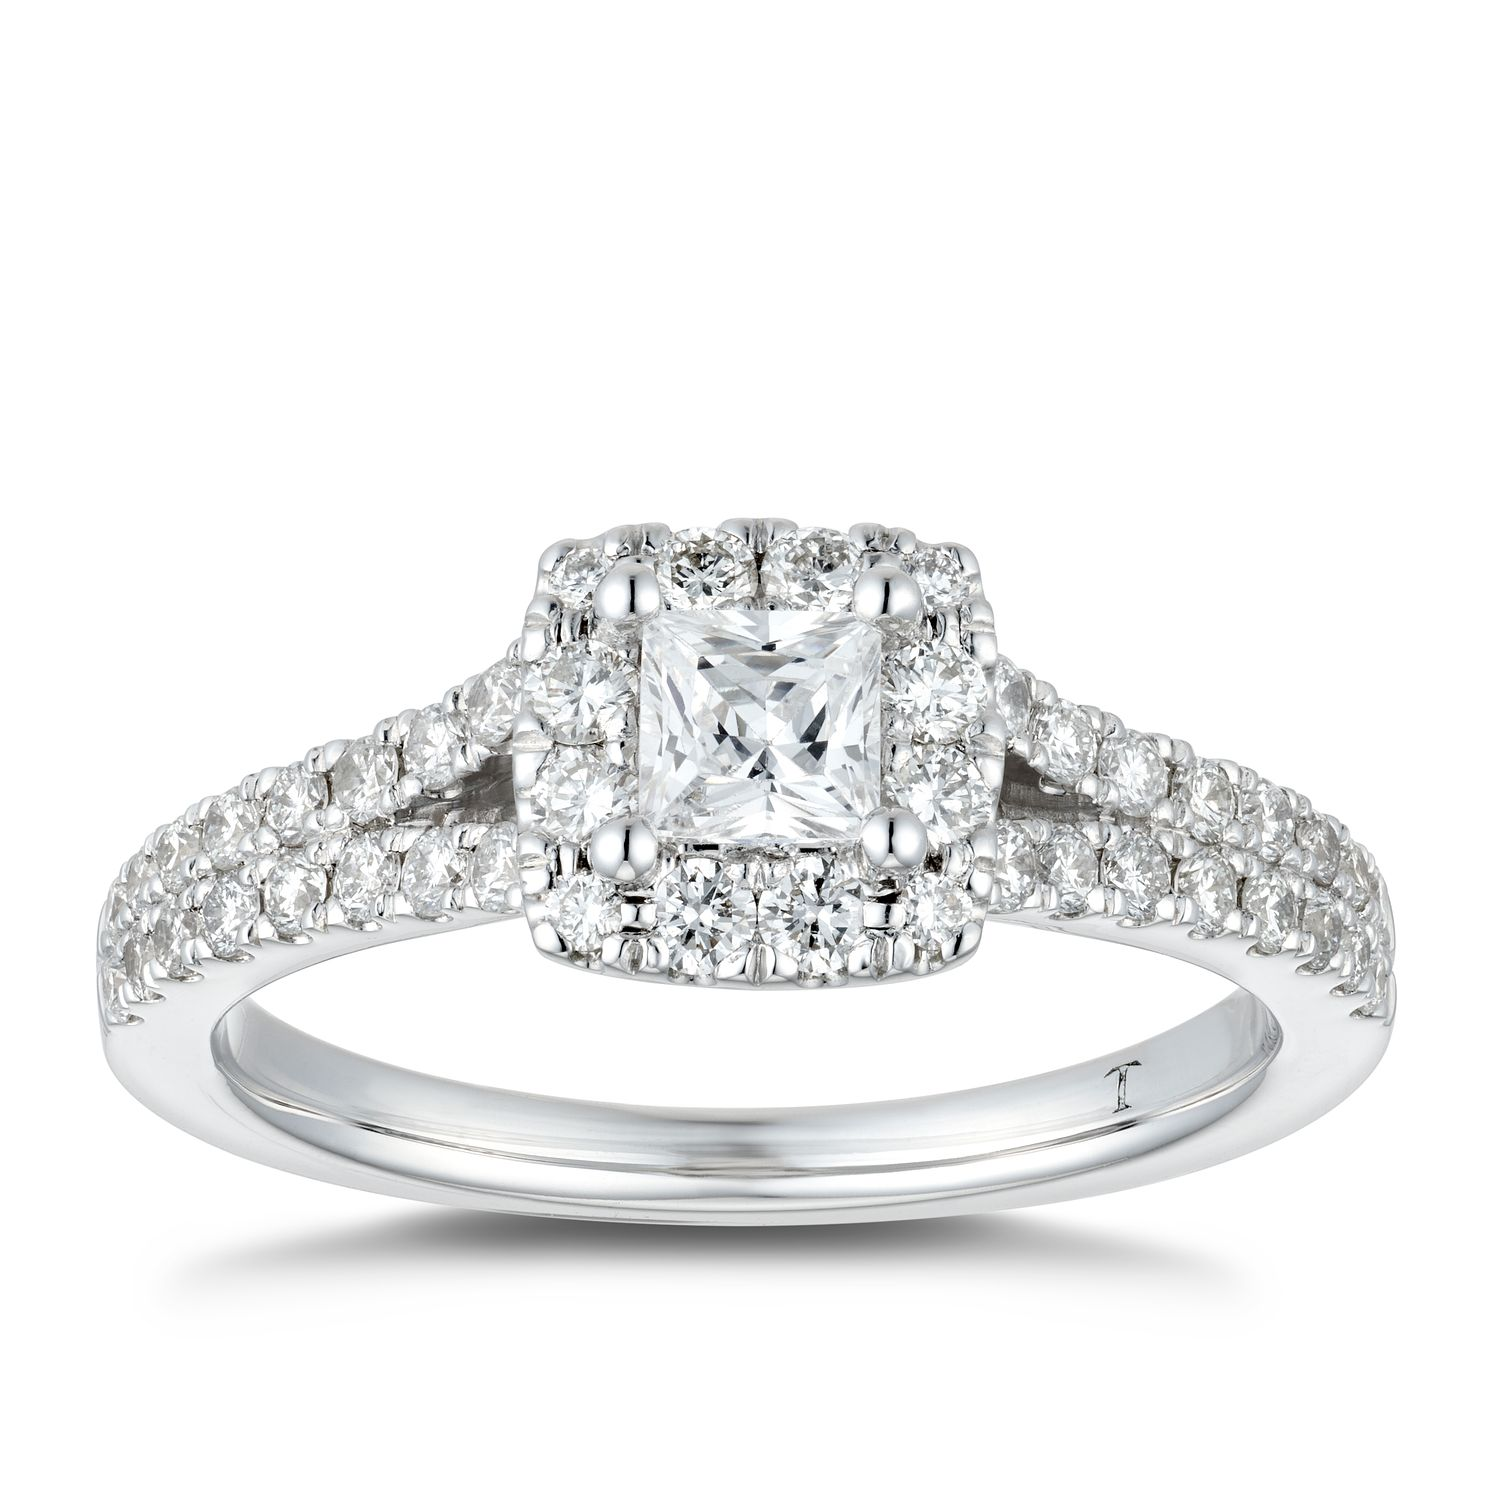 Tolkowsky18ct White Gold 0.85ct Diamond Princess Halo Ring - Product number 4182766